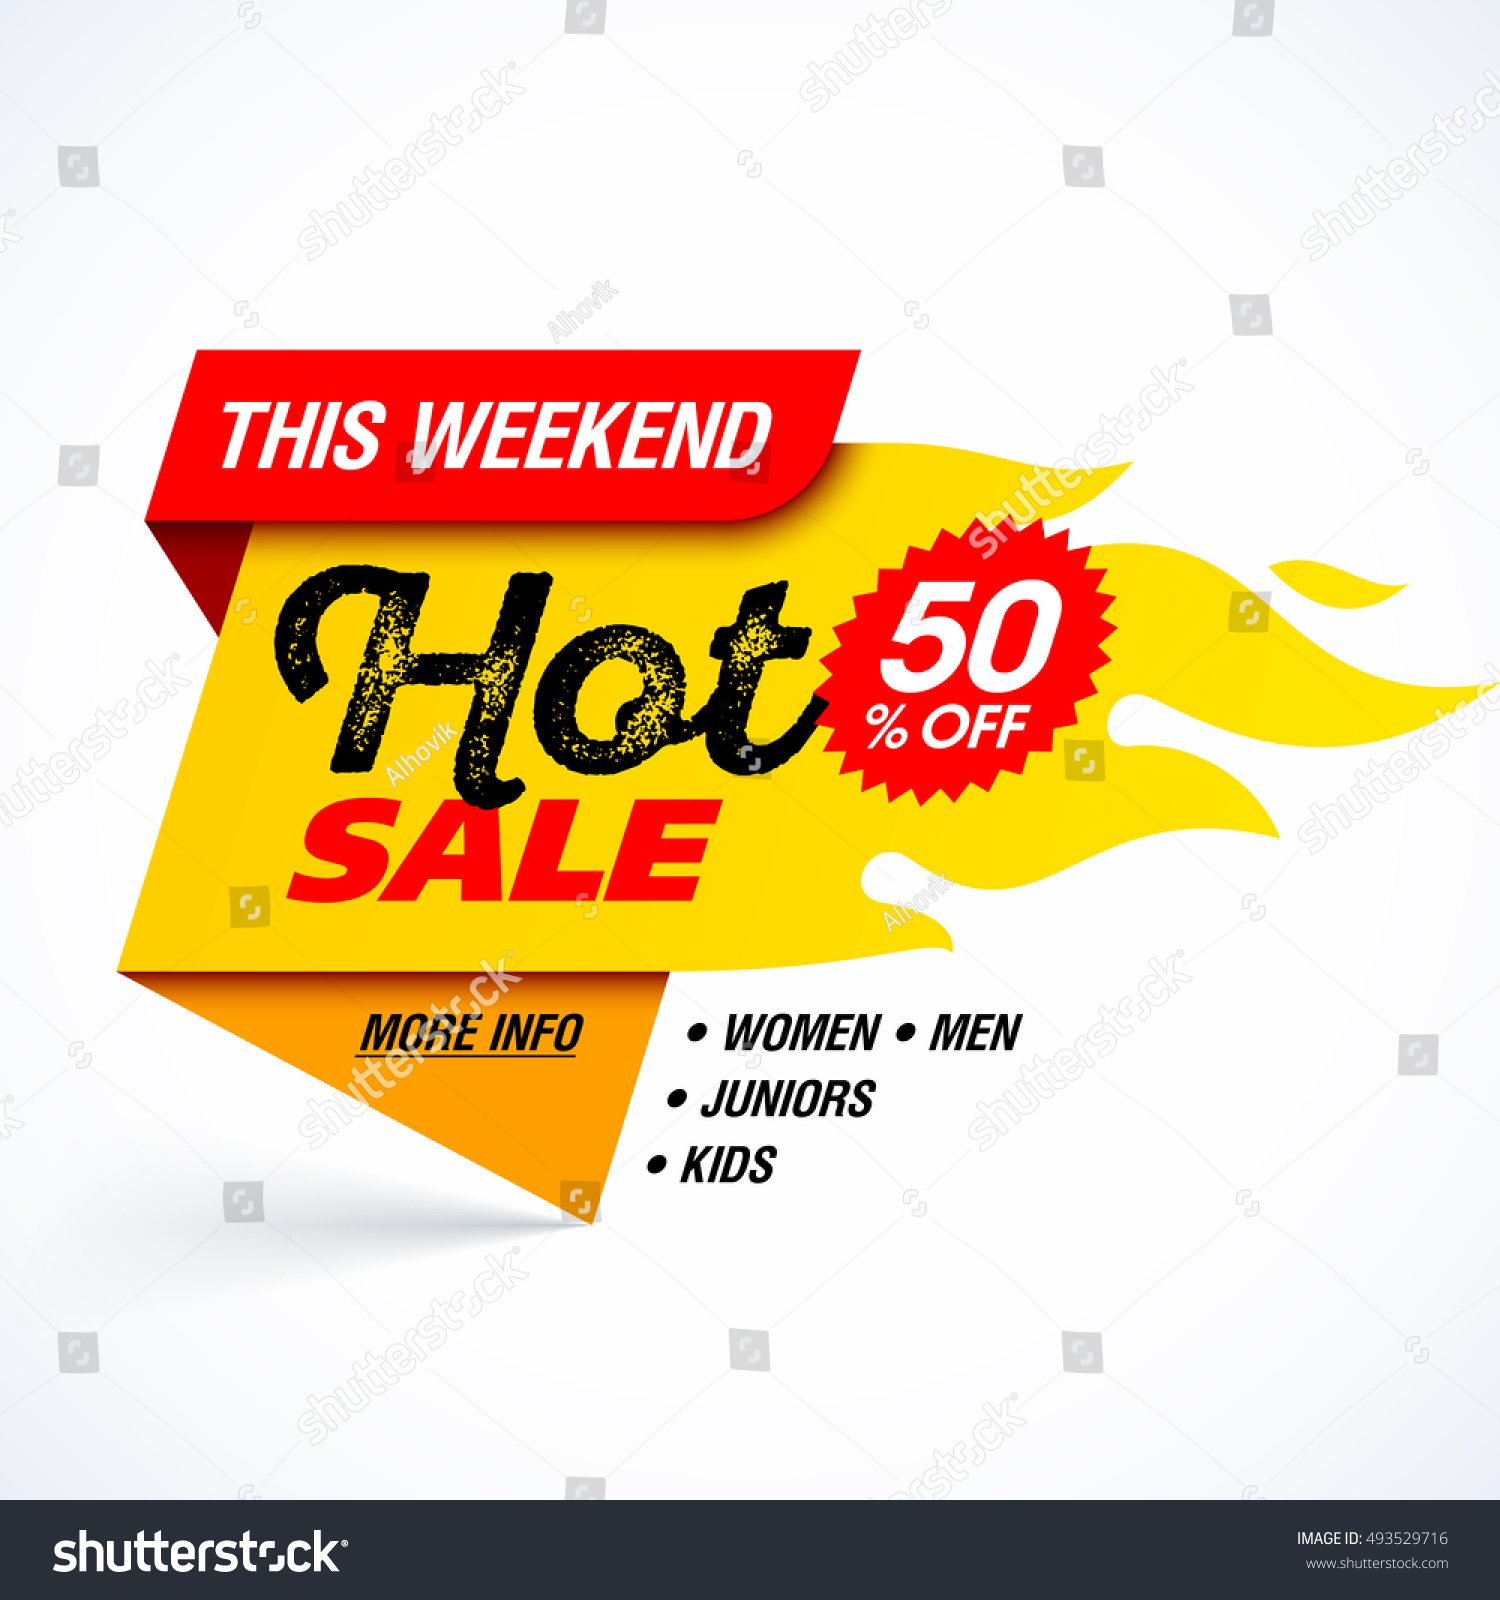 Weekend Sale Banner: Hot Sale Banner. This Weekend Special Offer, Big Sale